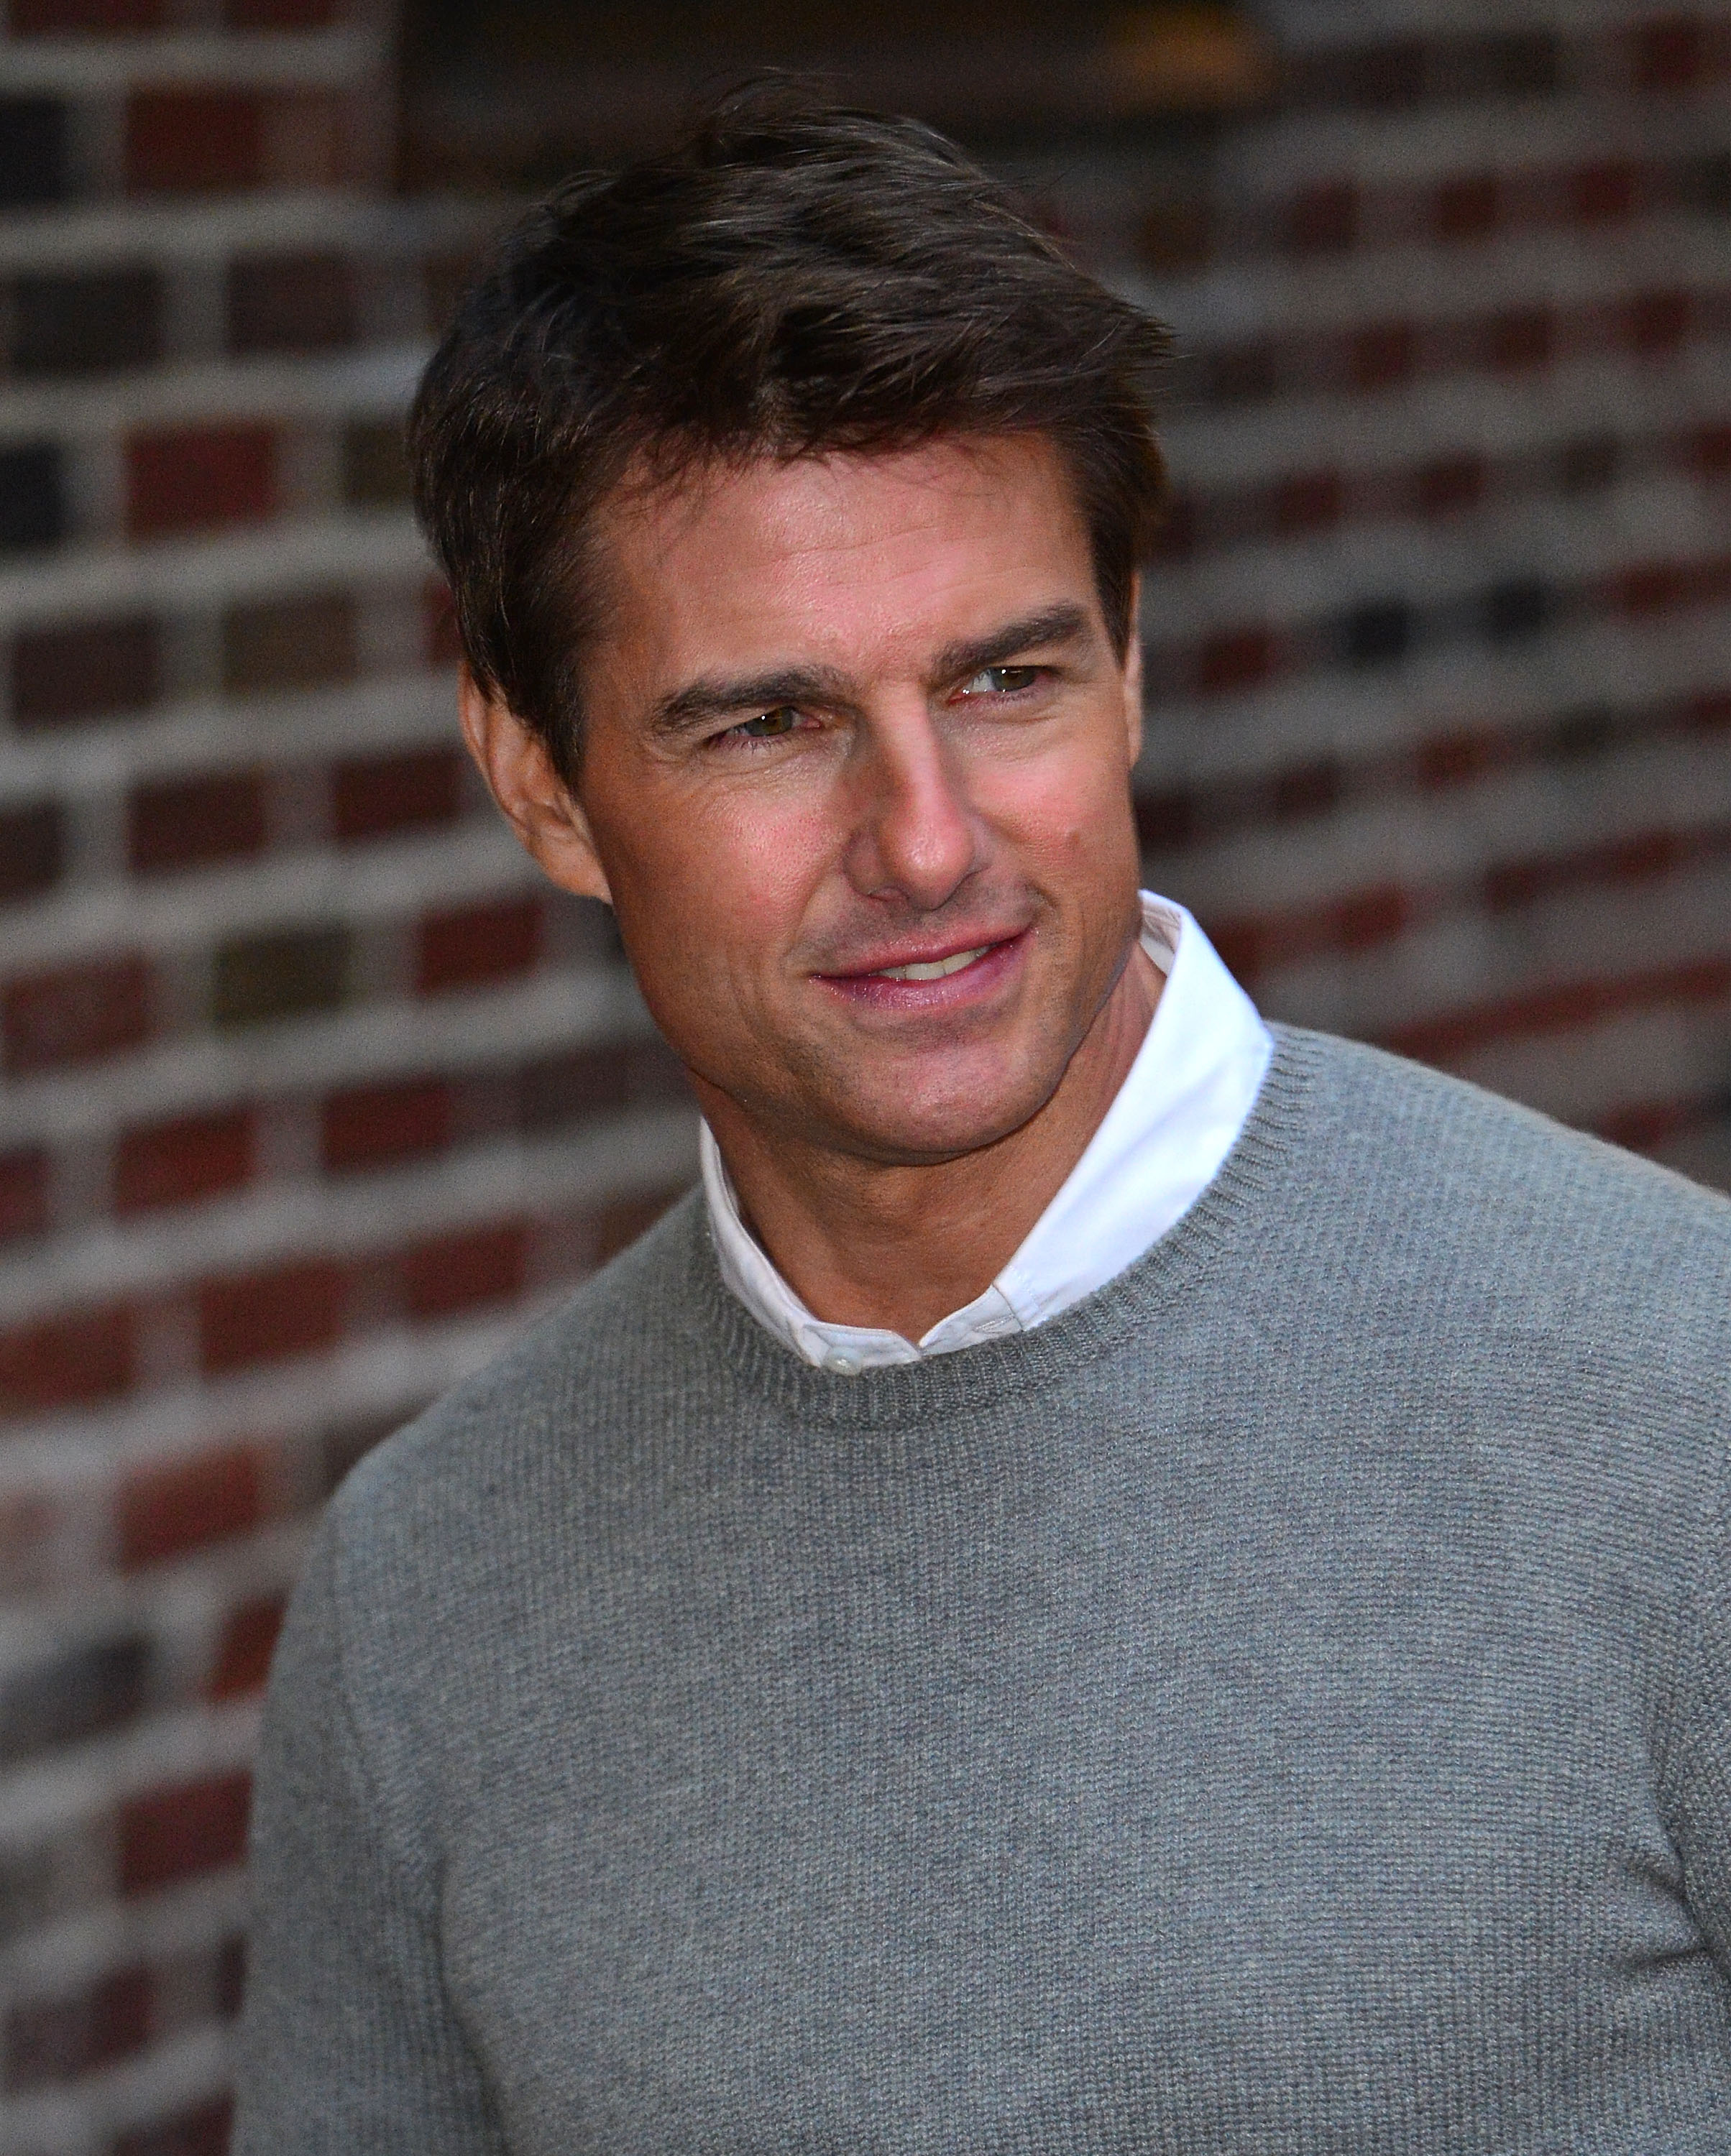 Tom Cruise smiled for photographers.